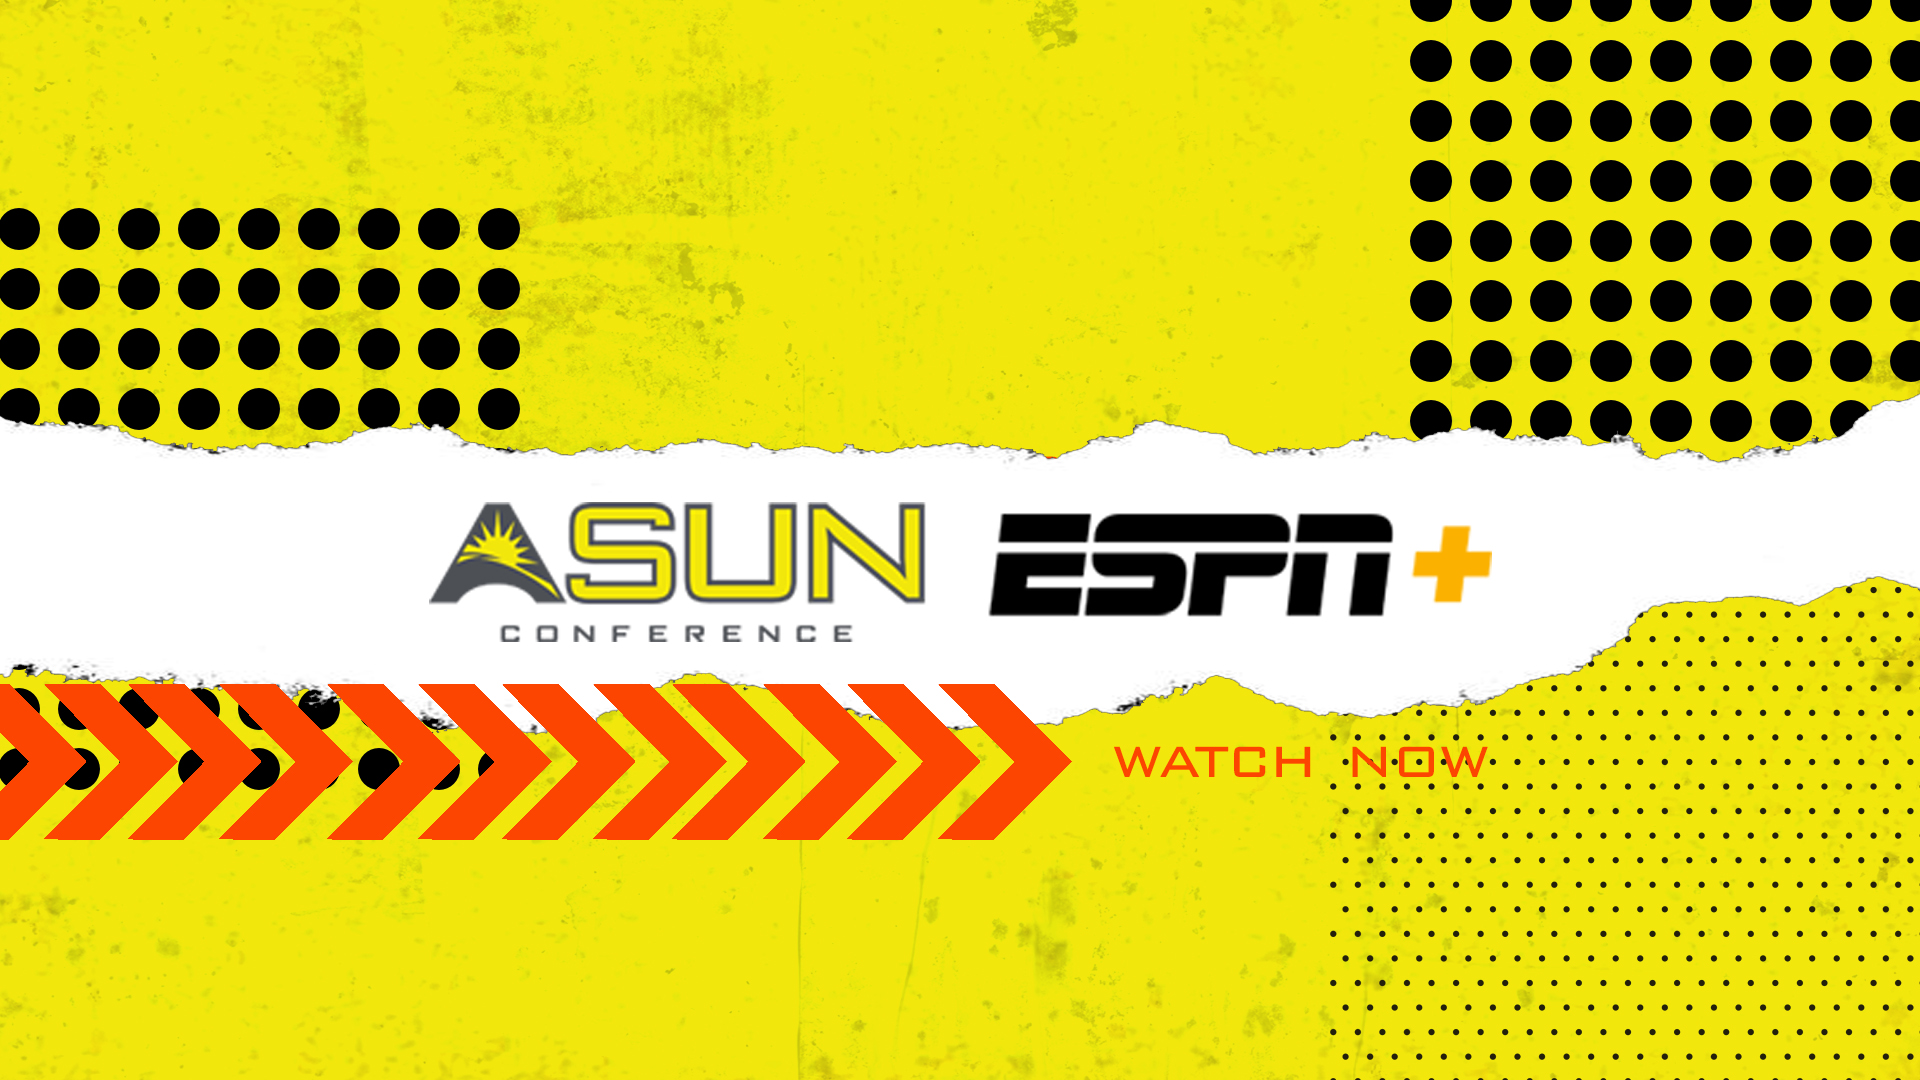 Learn More About ASUN's Video Streaming Platform - ESPN+